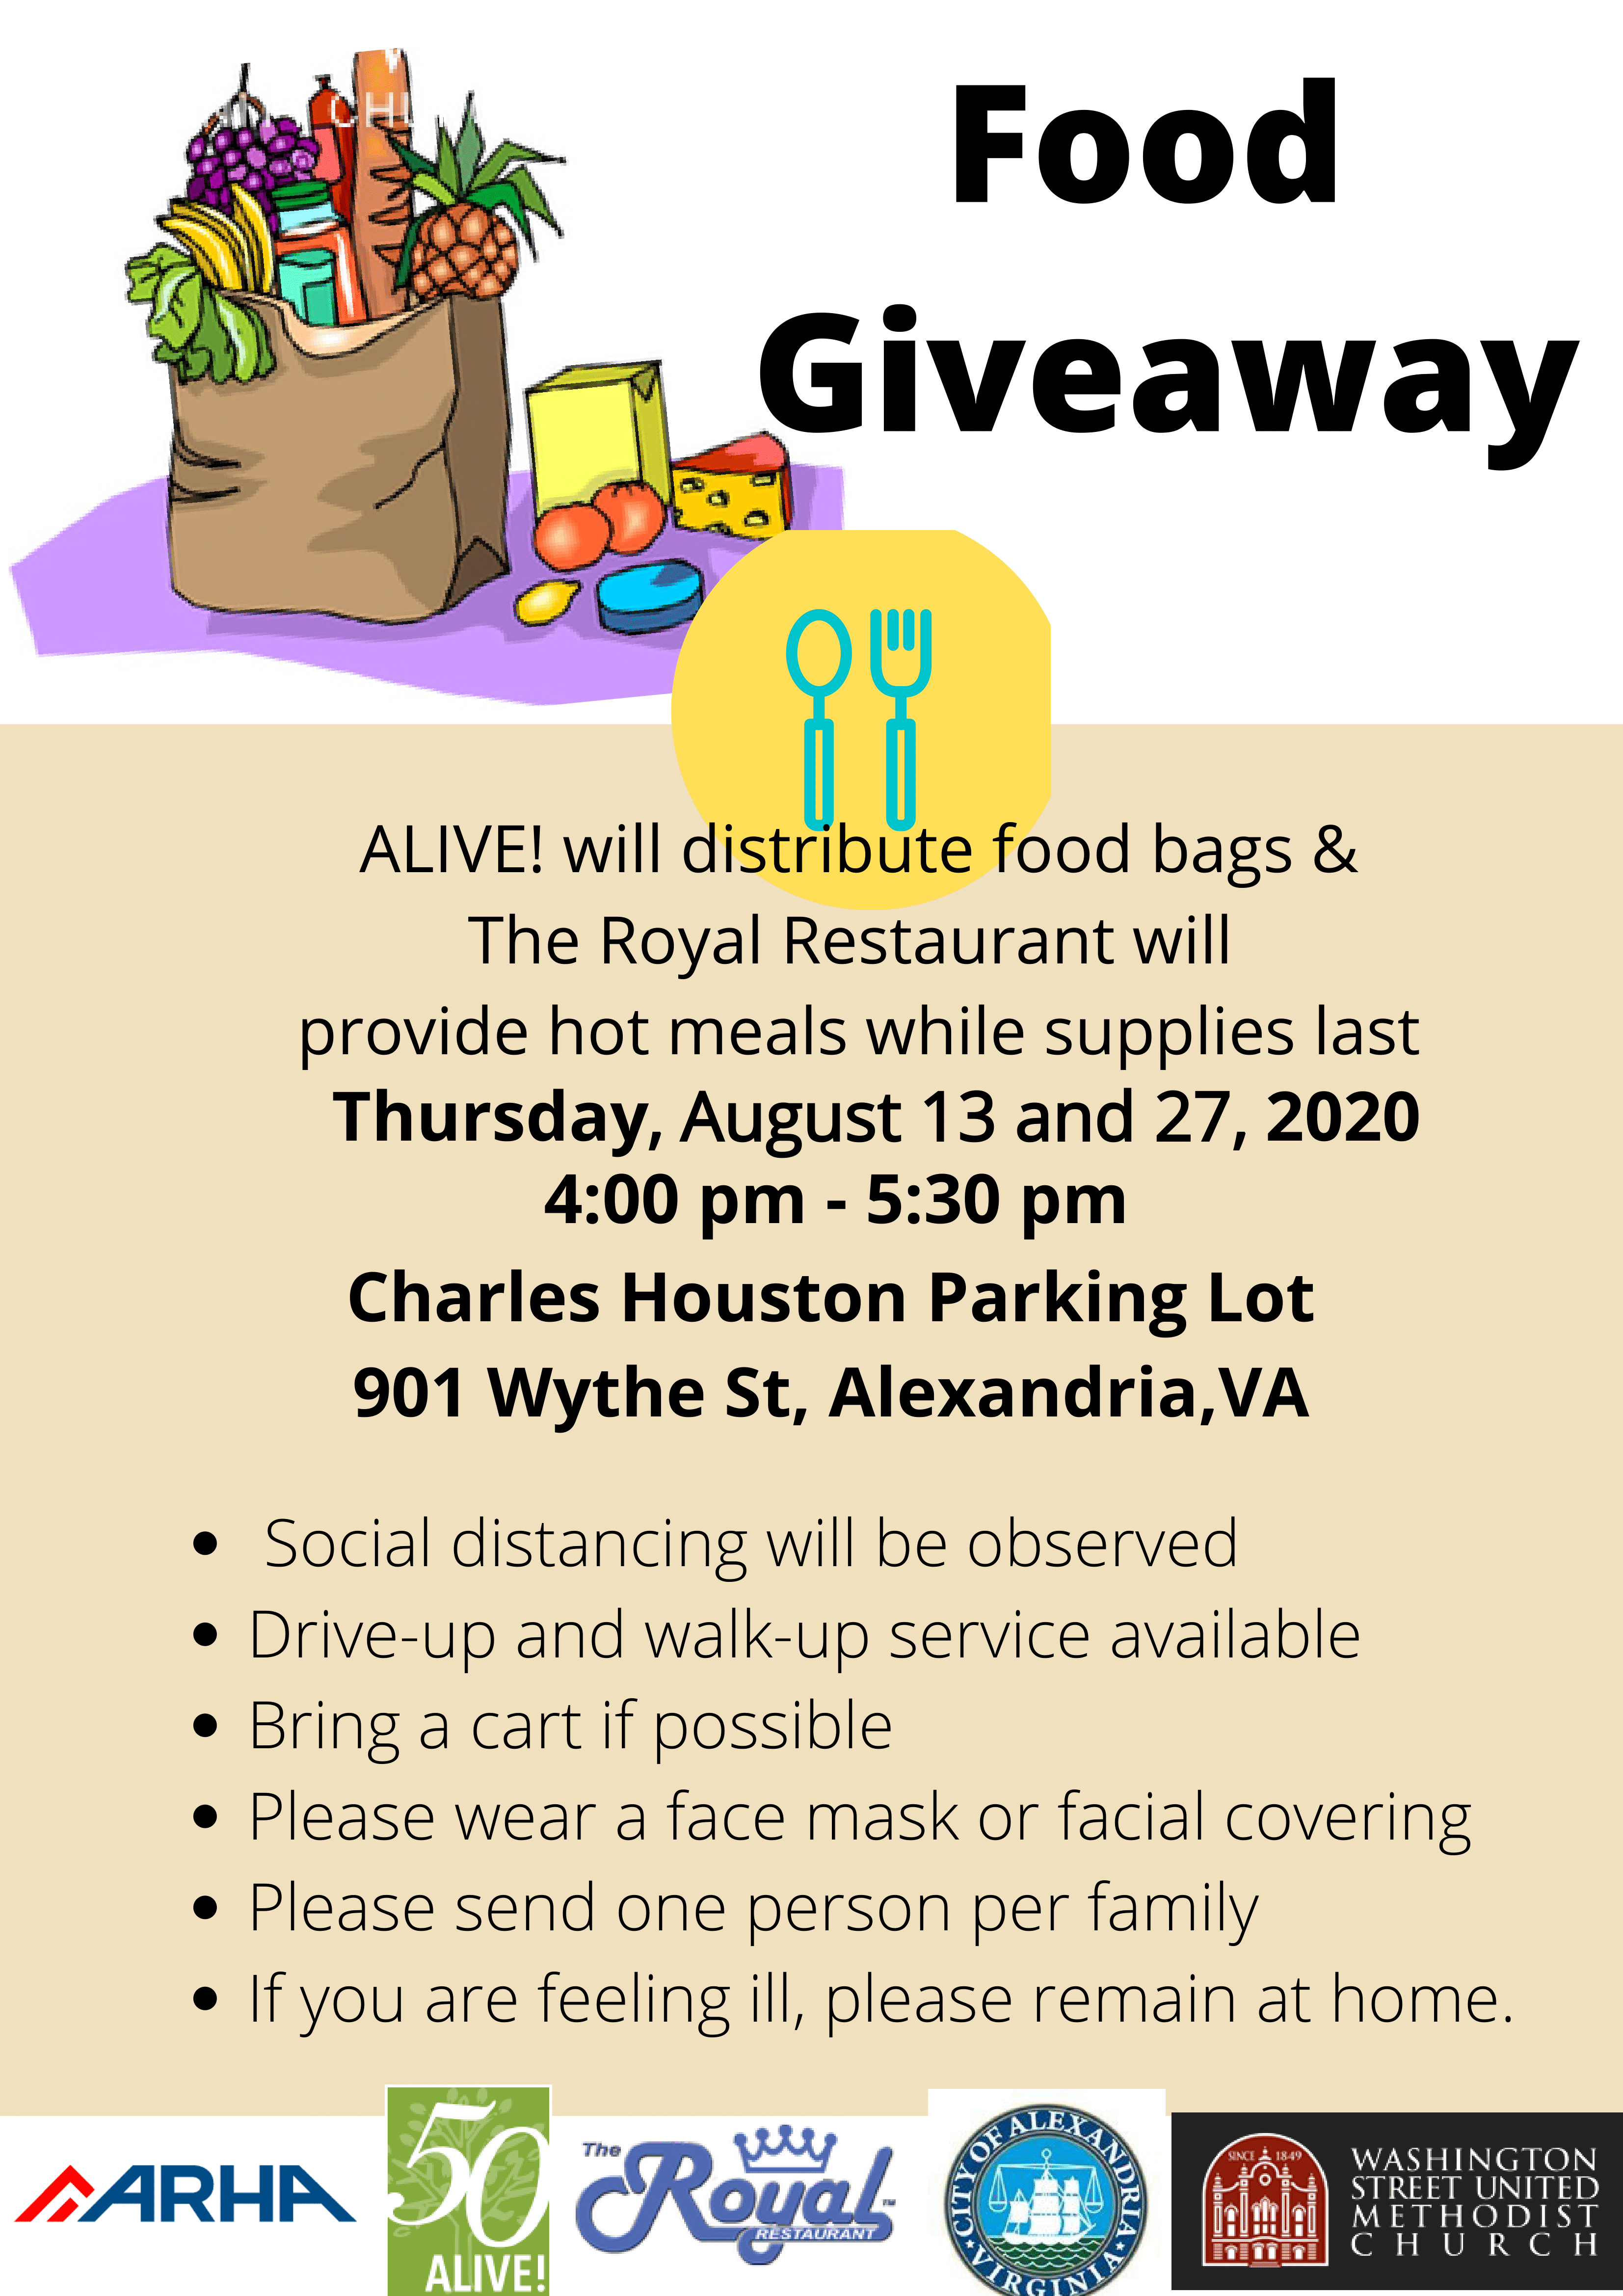 chfoodgiveaway